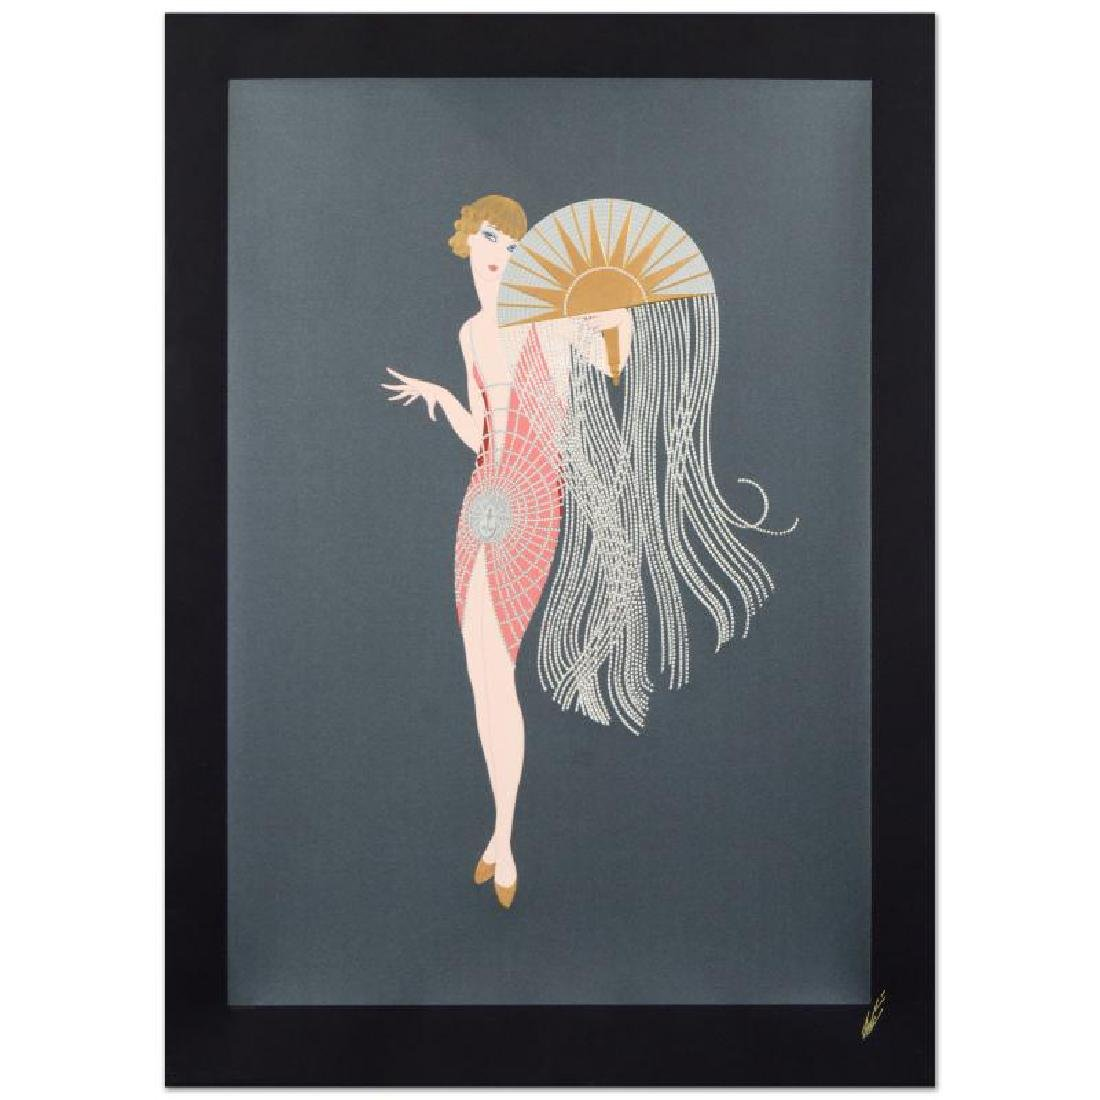 Flapper by Erte (1892-1990)